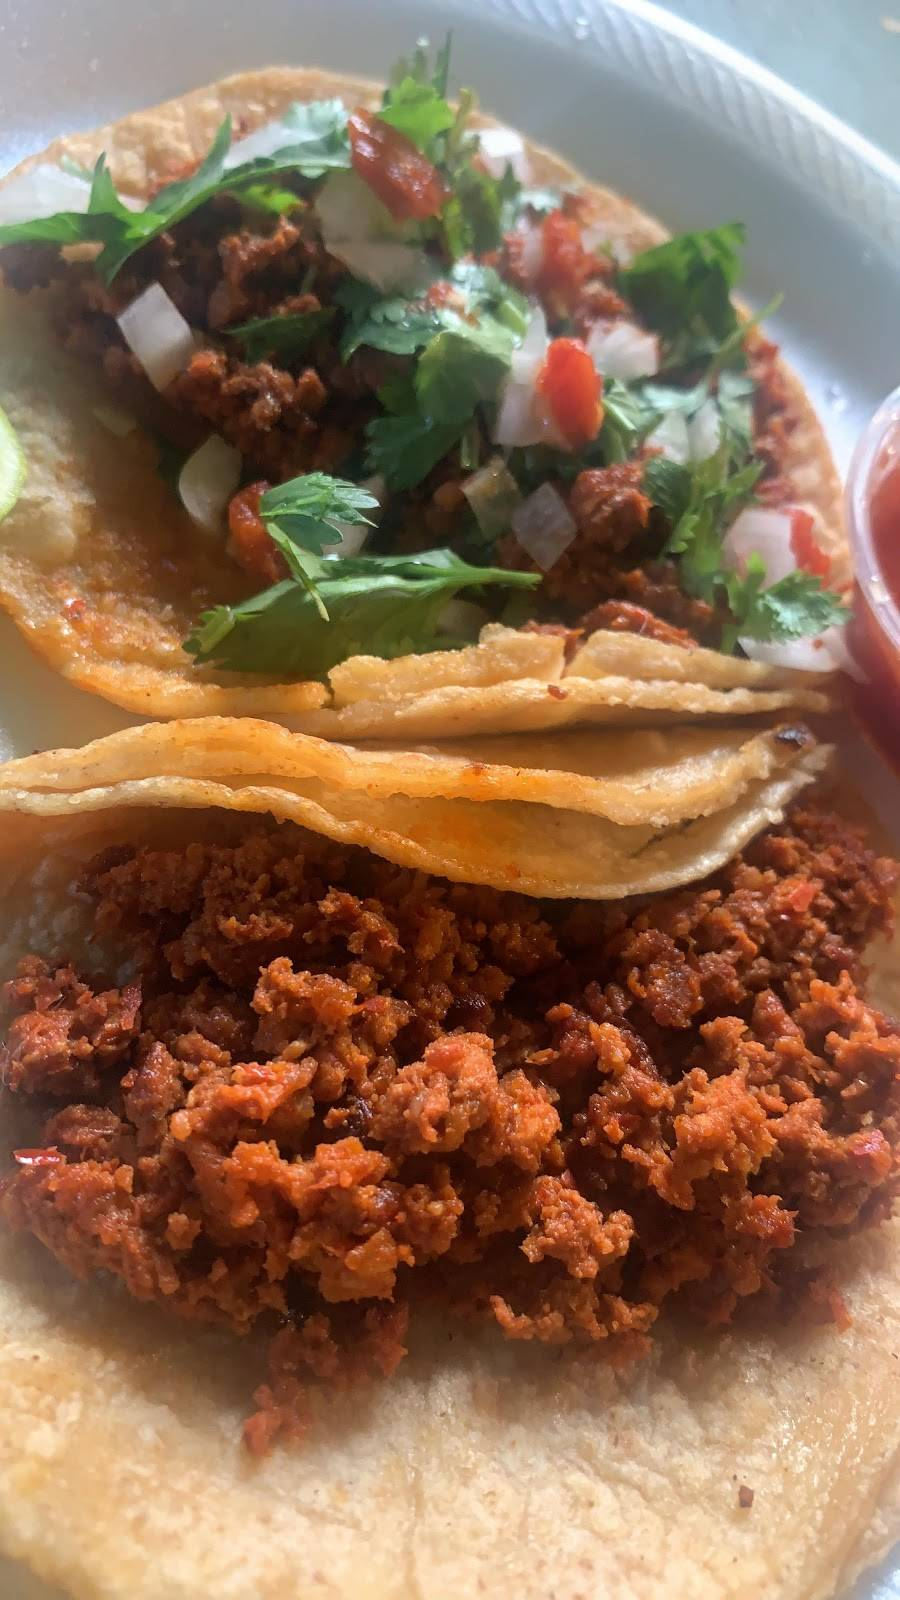 Big Tasty Tortas - Mexican Food Tacos near me in NWI   restaurant   6122 Harrison Ave, Hammond, IN 46324, USA   2192135252 OR +1 219-213-5252